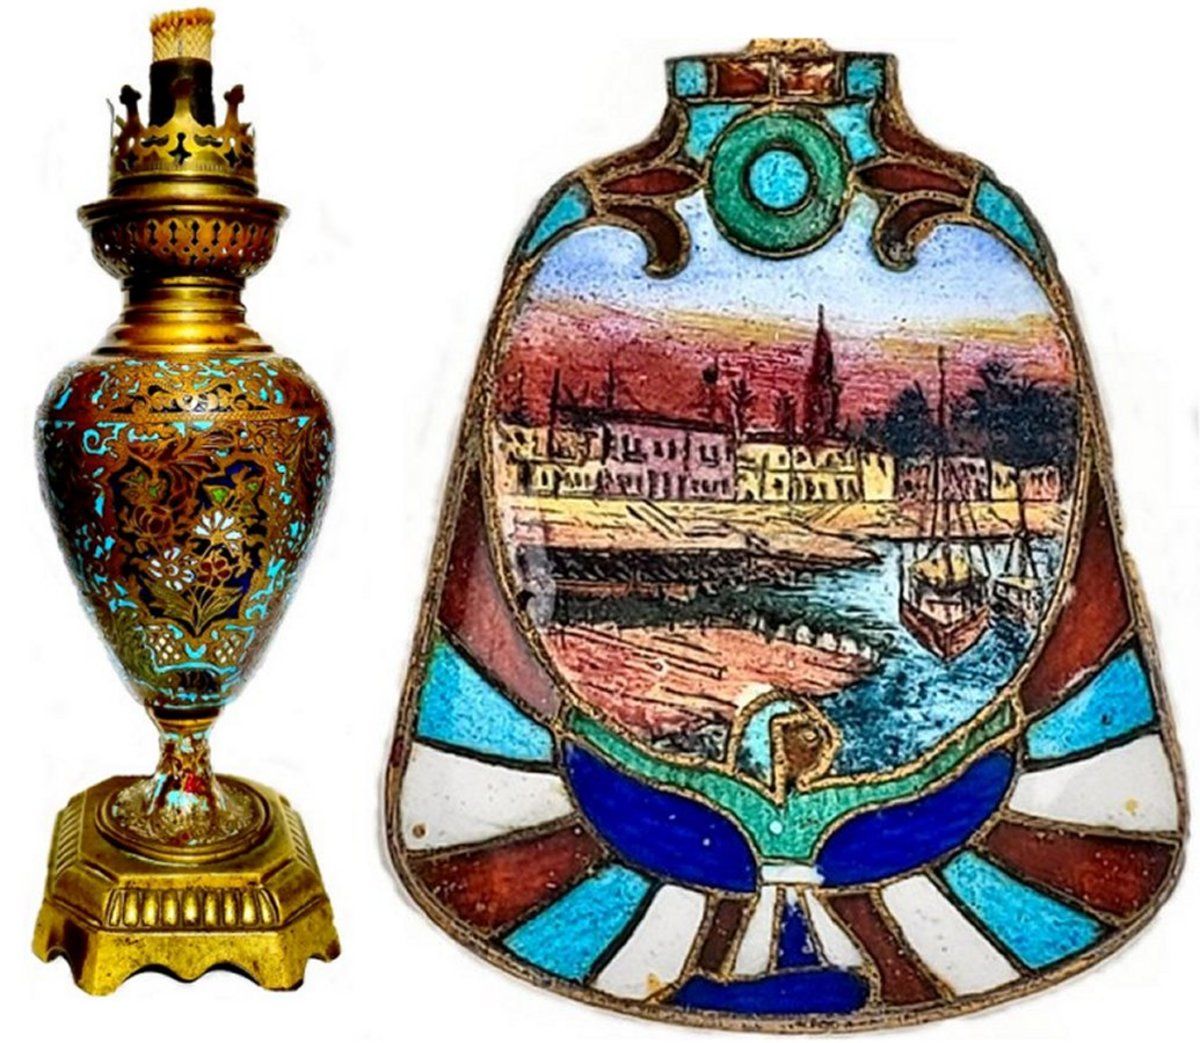 At the left is a 9-inch tall bronze lamp decorated overall in brightly colored enamel in a floral motif. The enamels are in blue, yellow, red, green, turquoise and white. The lamp was made in Leipzig, Germany by HASAG (Hugo Schneider), a company that began making lamps in 1863. The detail of the bowl of a 1920s Egyptian revival spoon, right, displays the high quality and fine detail than was achieved in the use of enamels. The absence of damage attests to the durability of enamel on this 150-year-old lamp and nearly 100-year-old spoon.